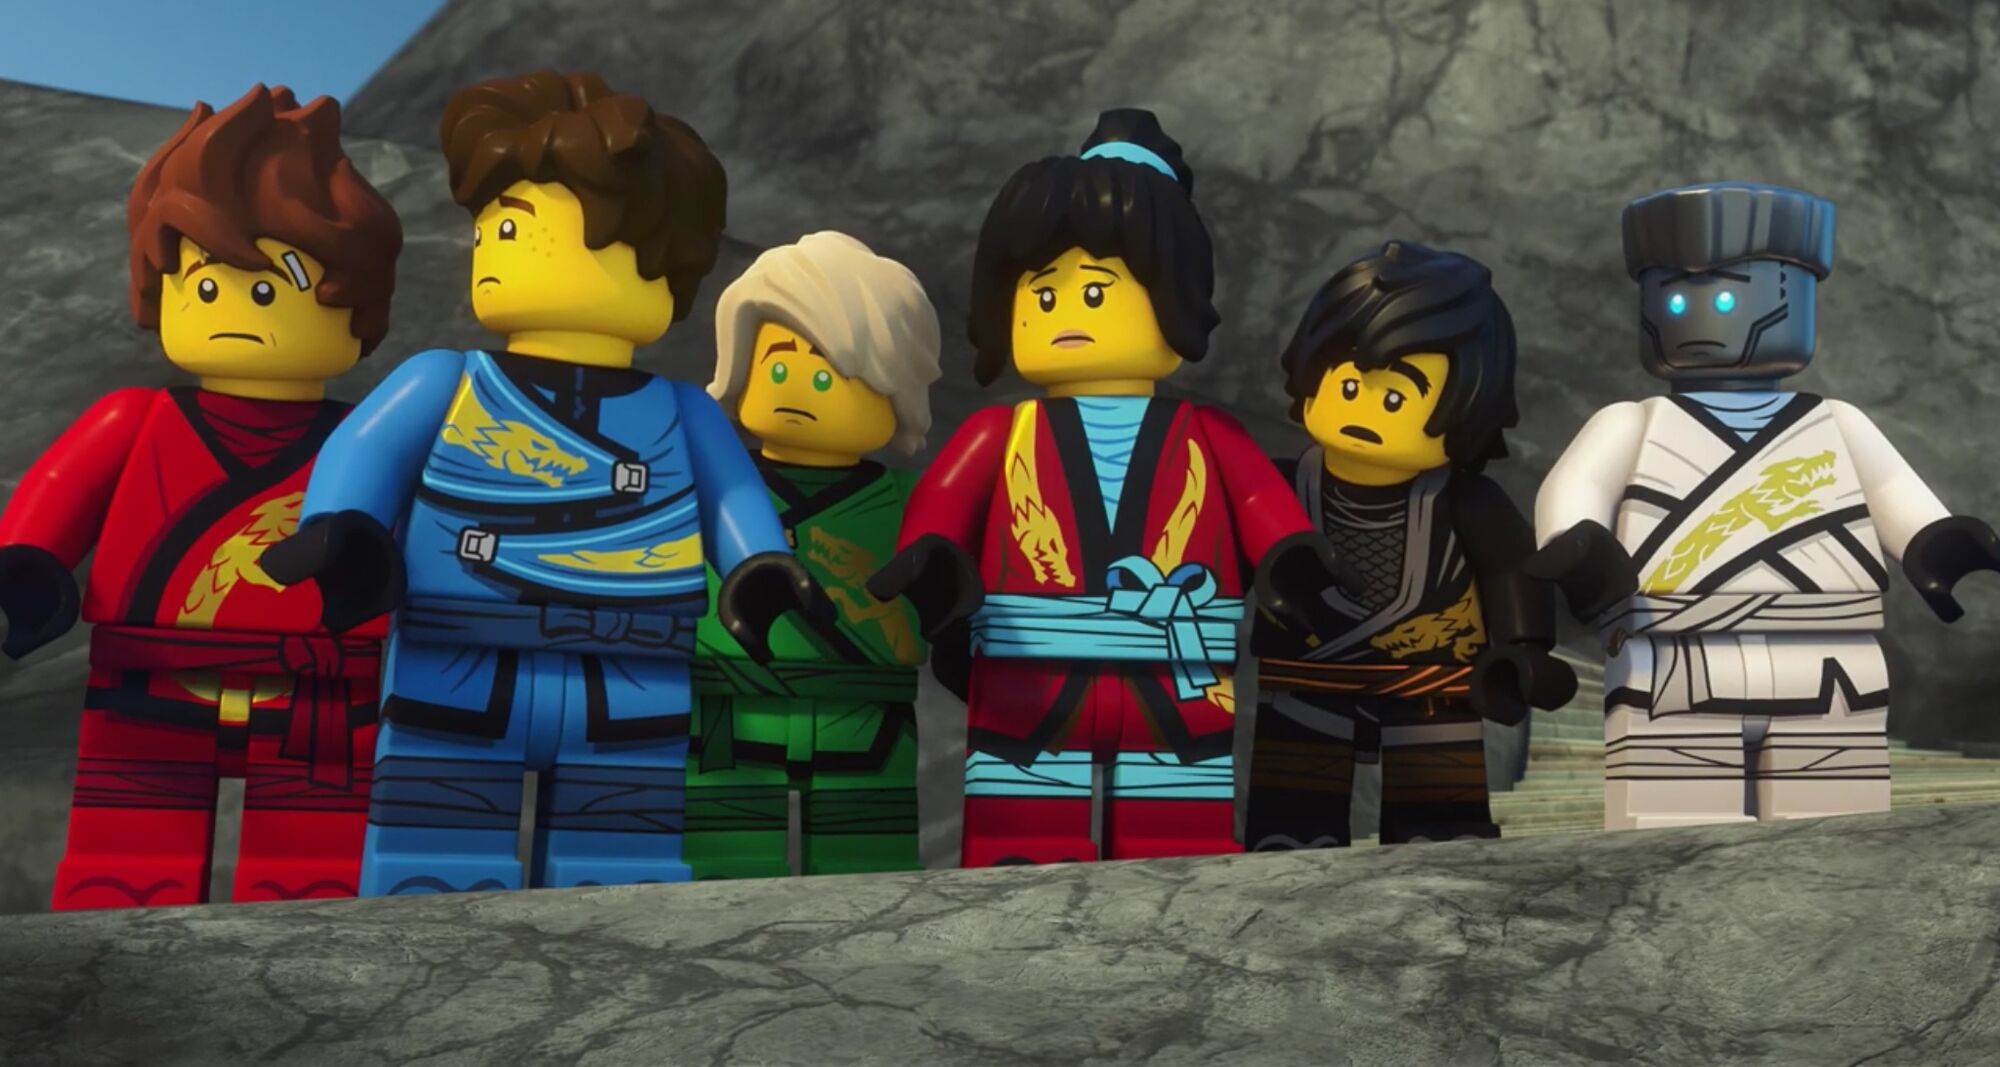 Ninja | LEGO Ninjago Wiki | FANDOM powered by Wikia